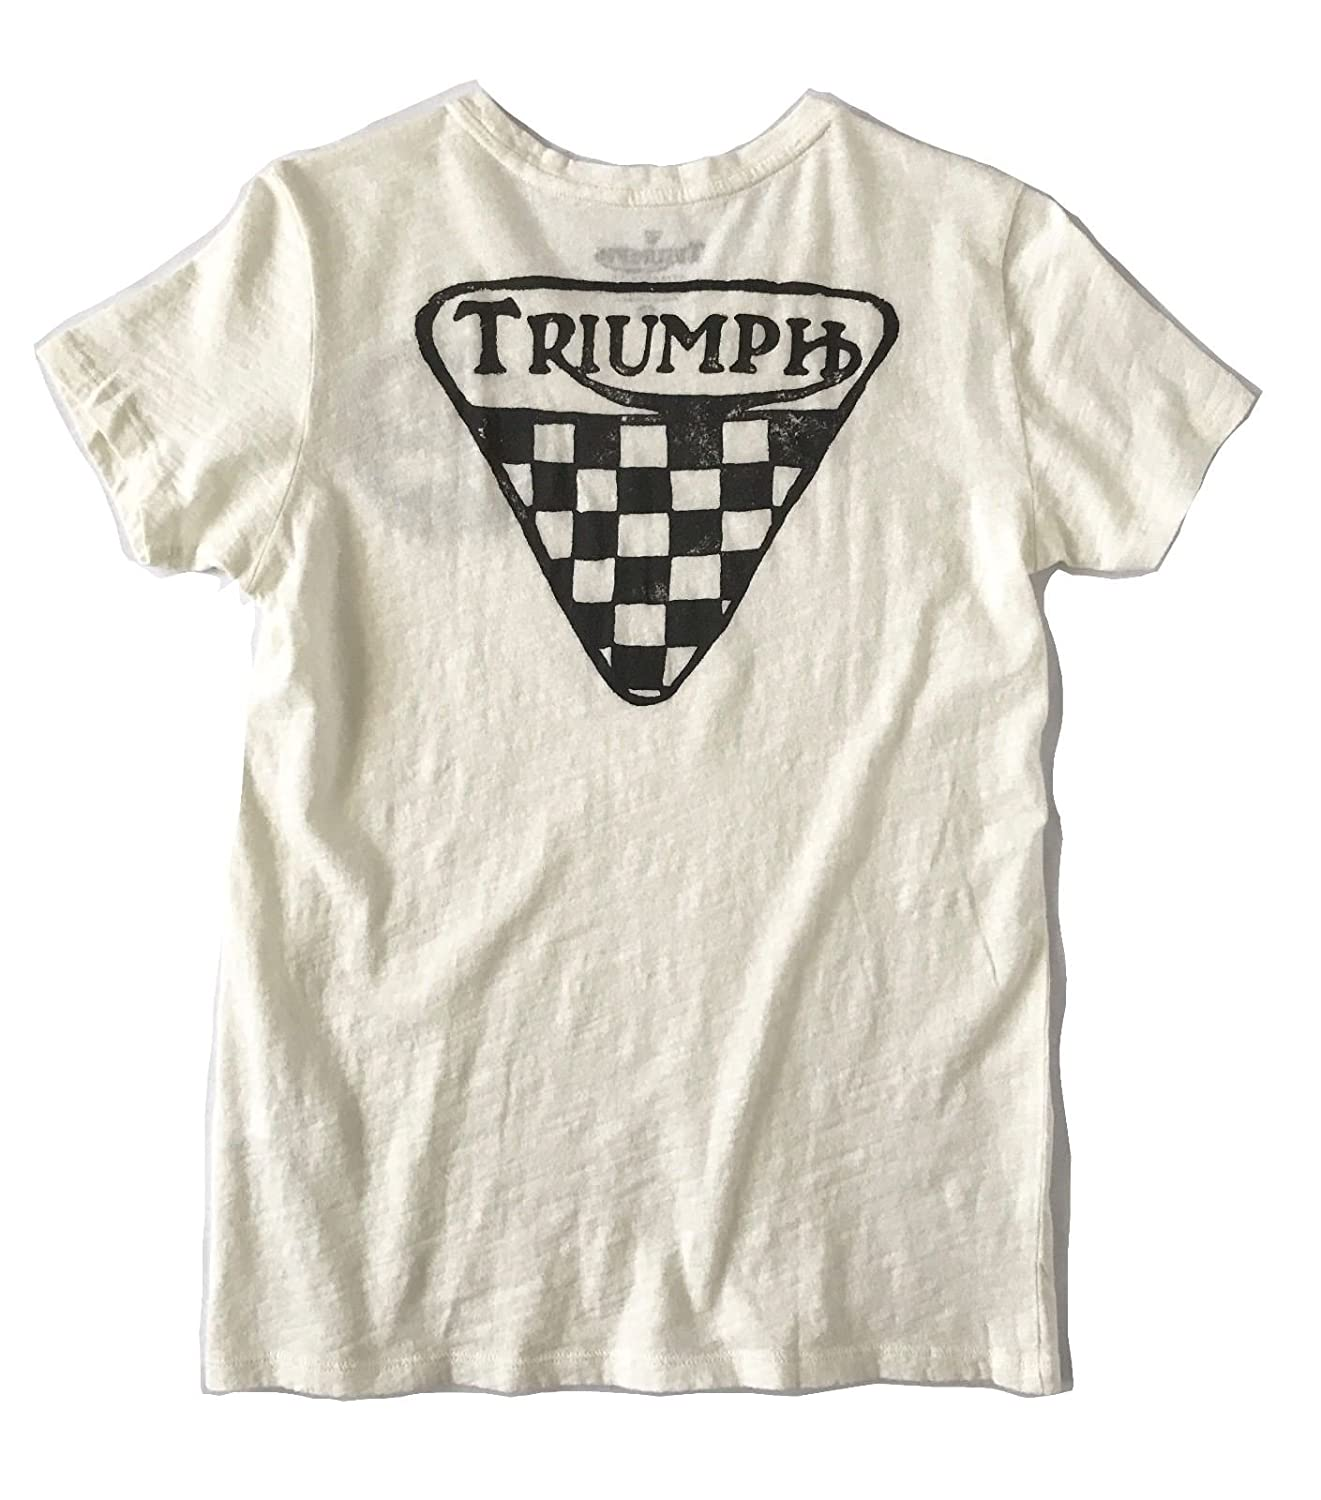 9f4aea8d4 Lucky Brand Women's Triumph 72 Tee Shirt Vintage Look at Amazon Women's  Clothing store: